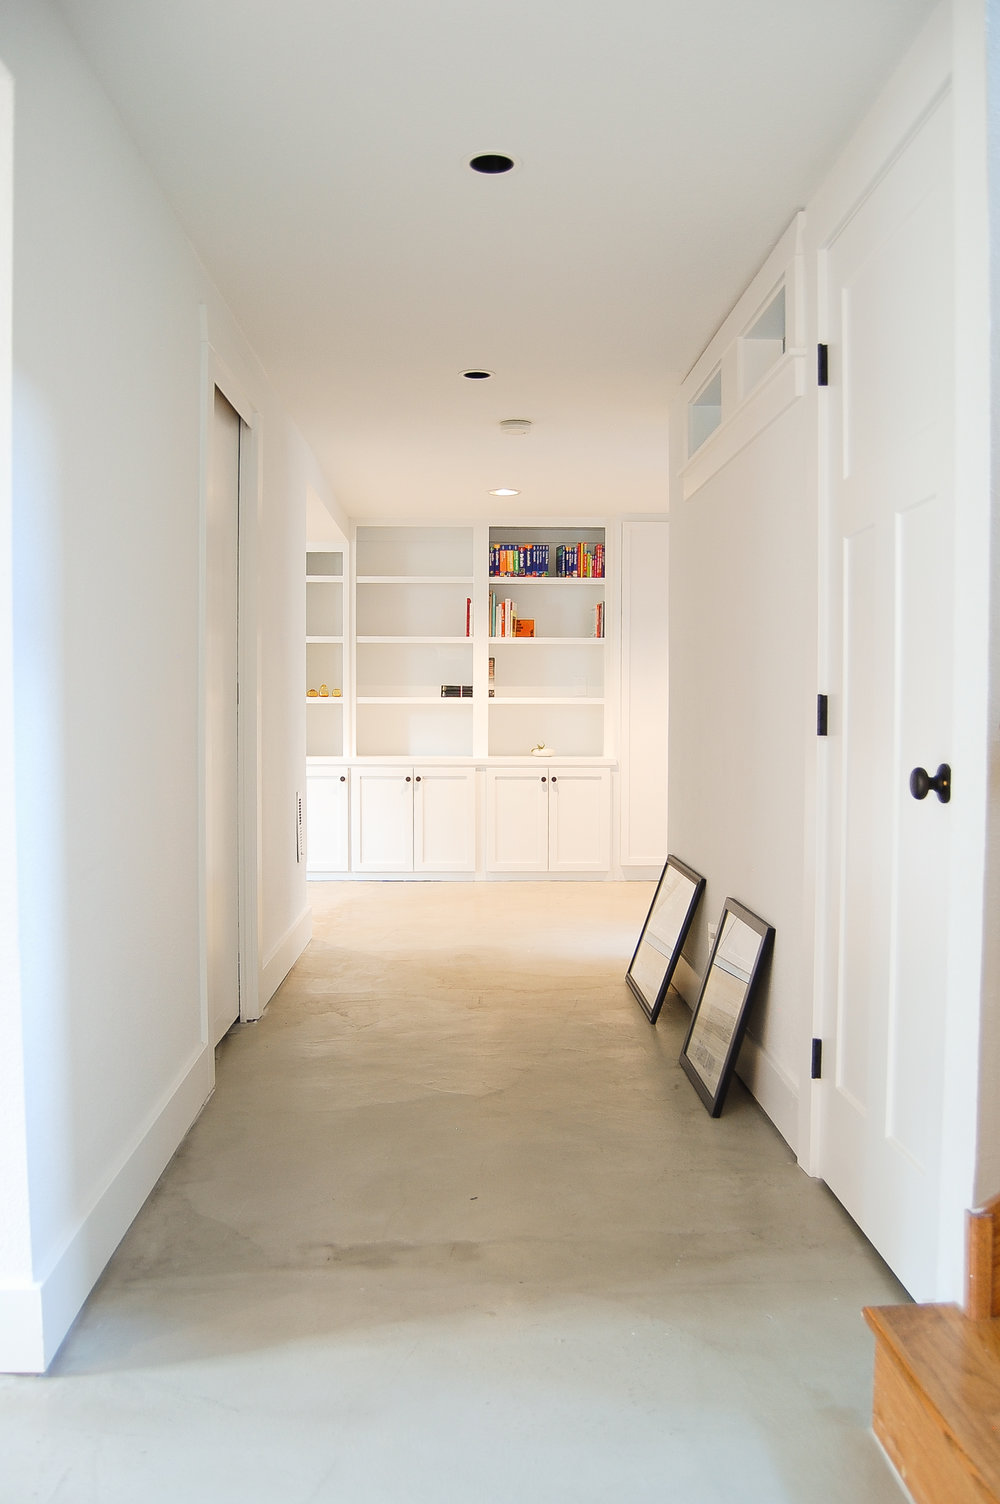 Ample shelves offer plenty of space for these avid book collectors to organize using the dewey decimal system, while leaving space to showcase collected objects and art. An extra-wide hallway keeps the basement spacious and open, with expansive walls to display a growing art collection.